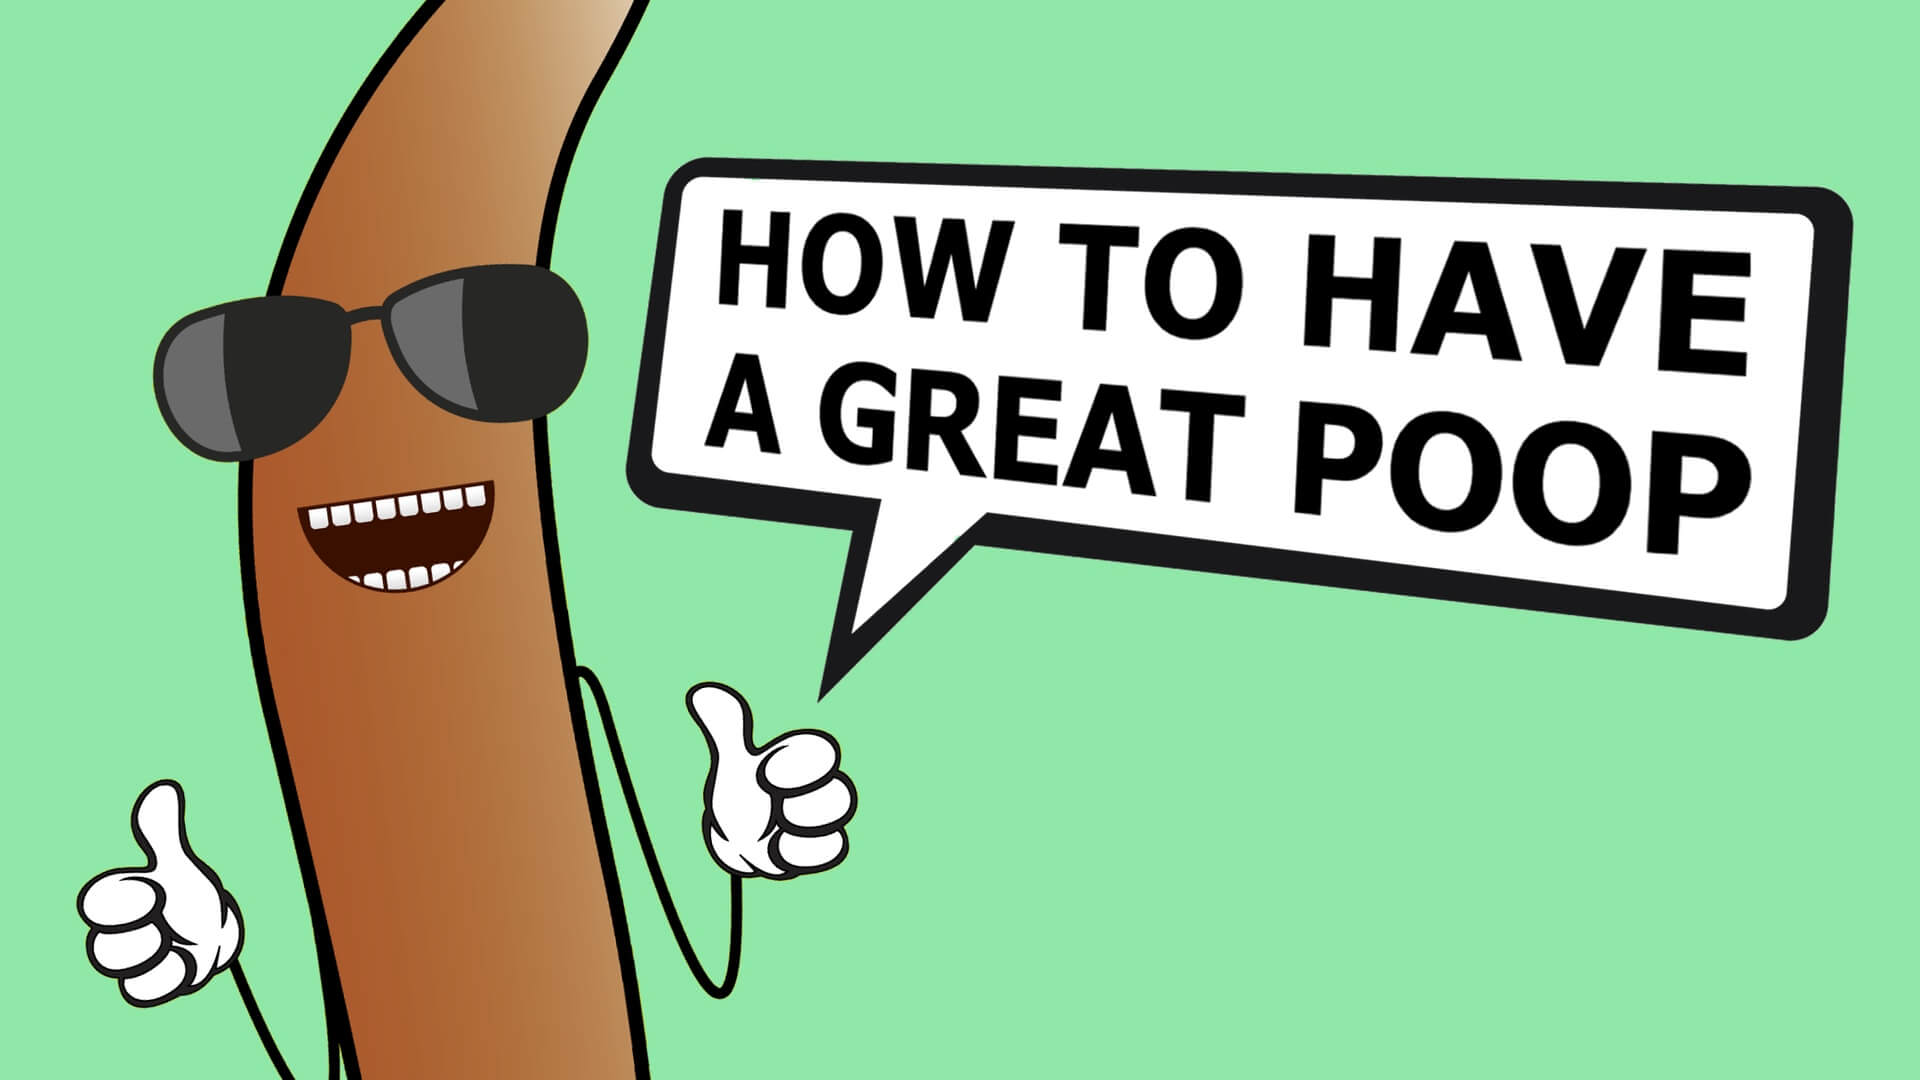 How To Poop And Make It Great